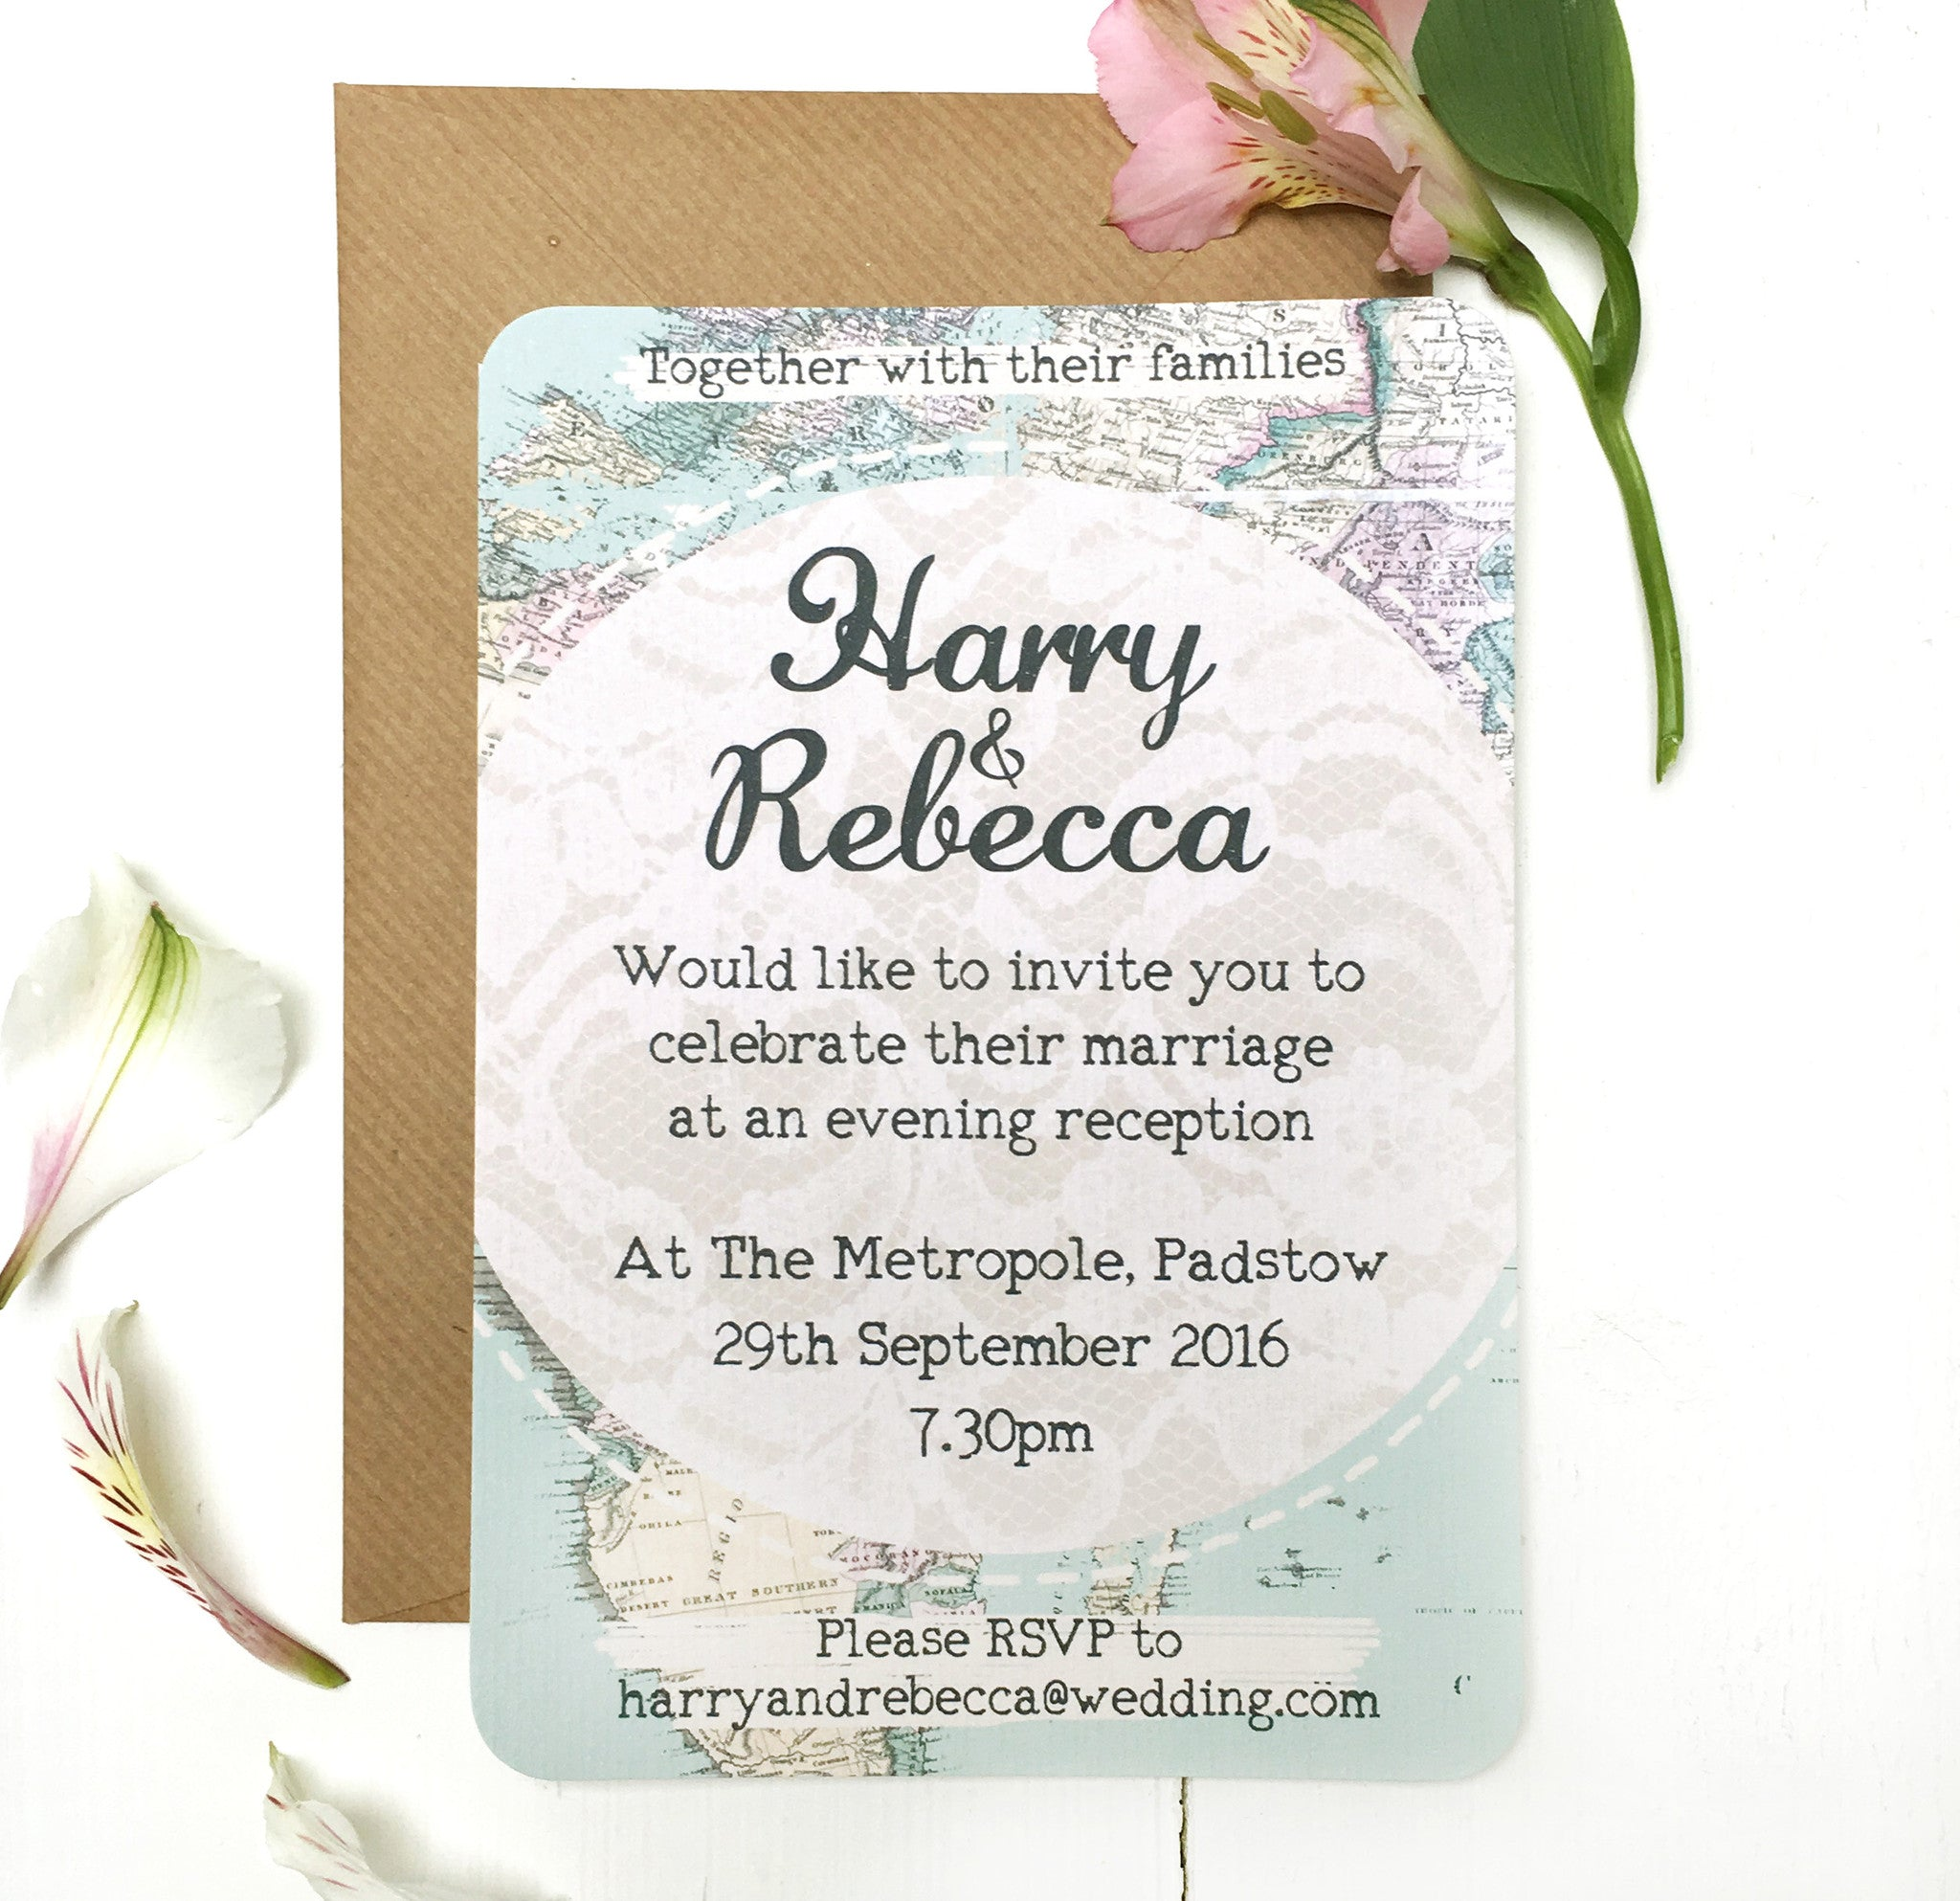 Travel Inspired Evening Wedding Reception Invitation by Peardrop Avenue